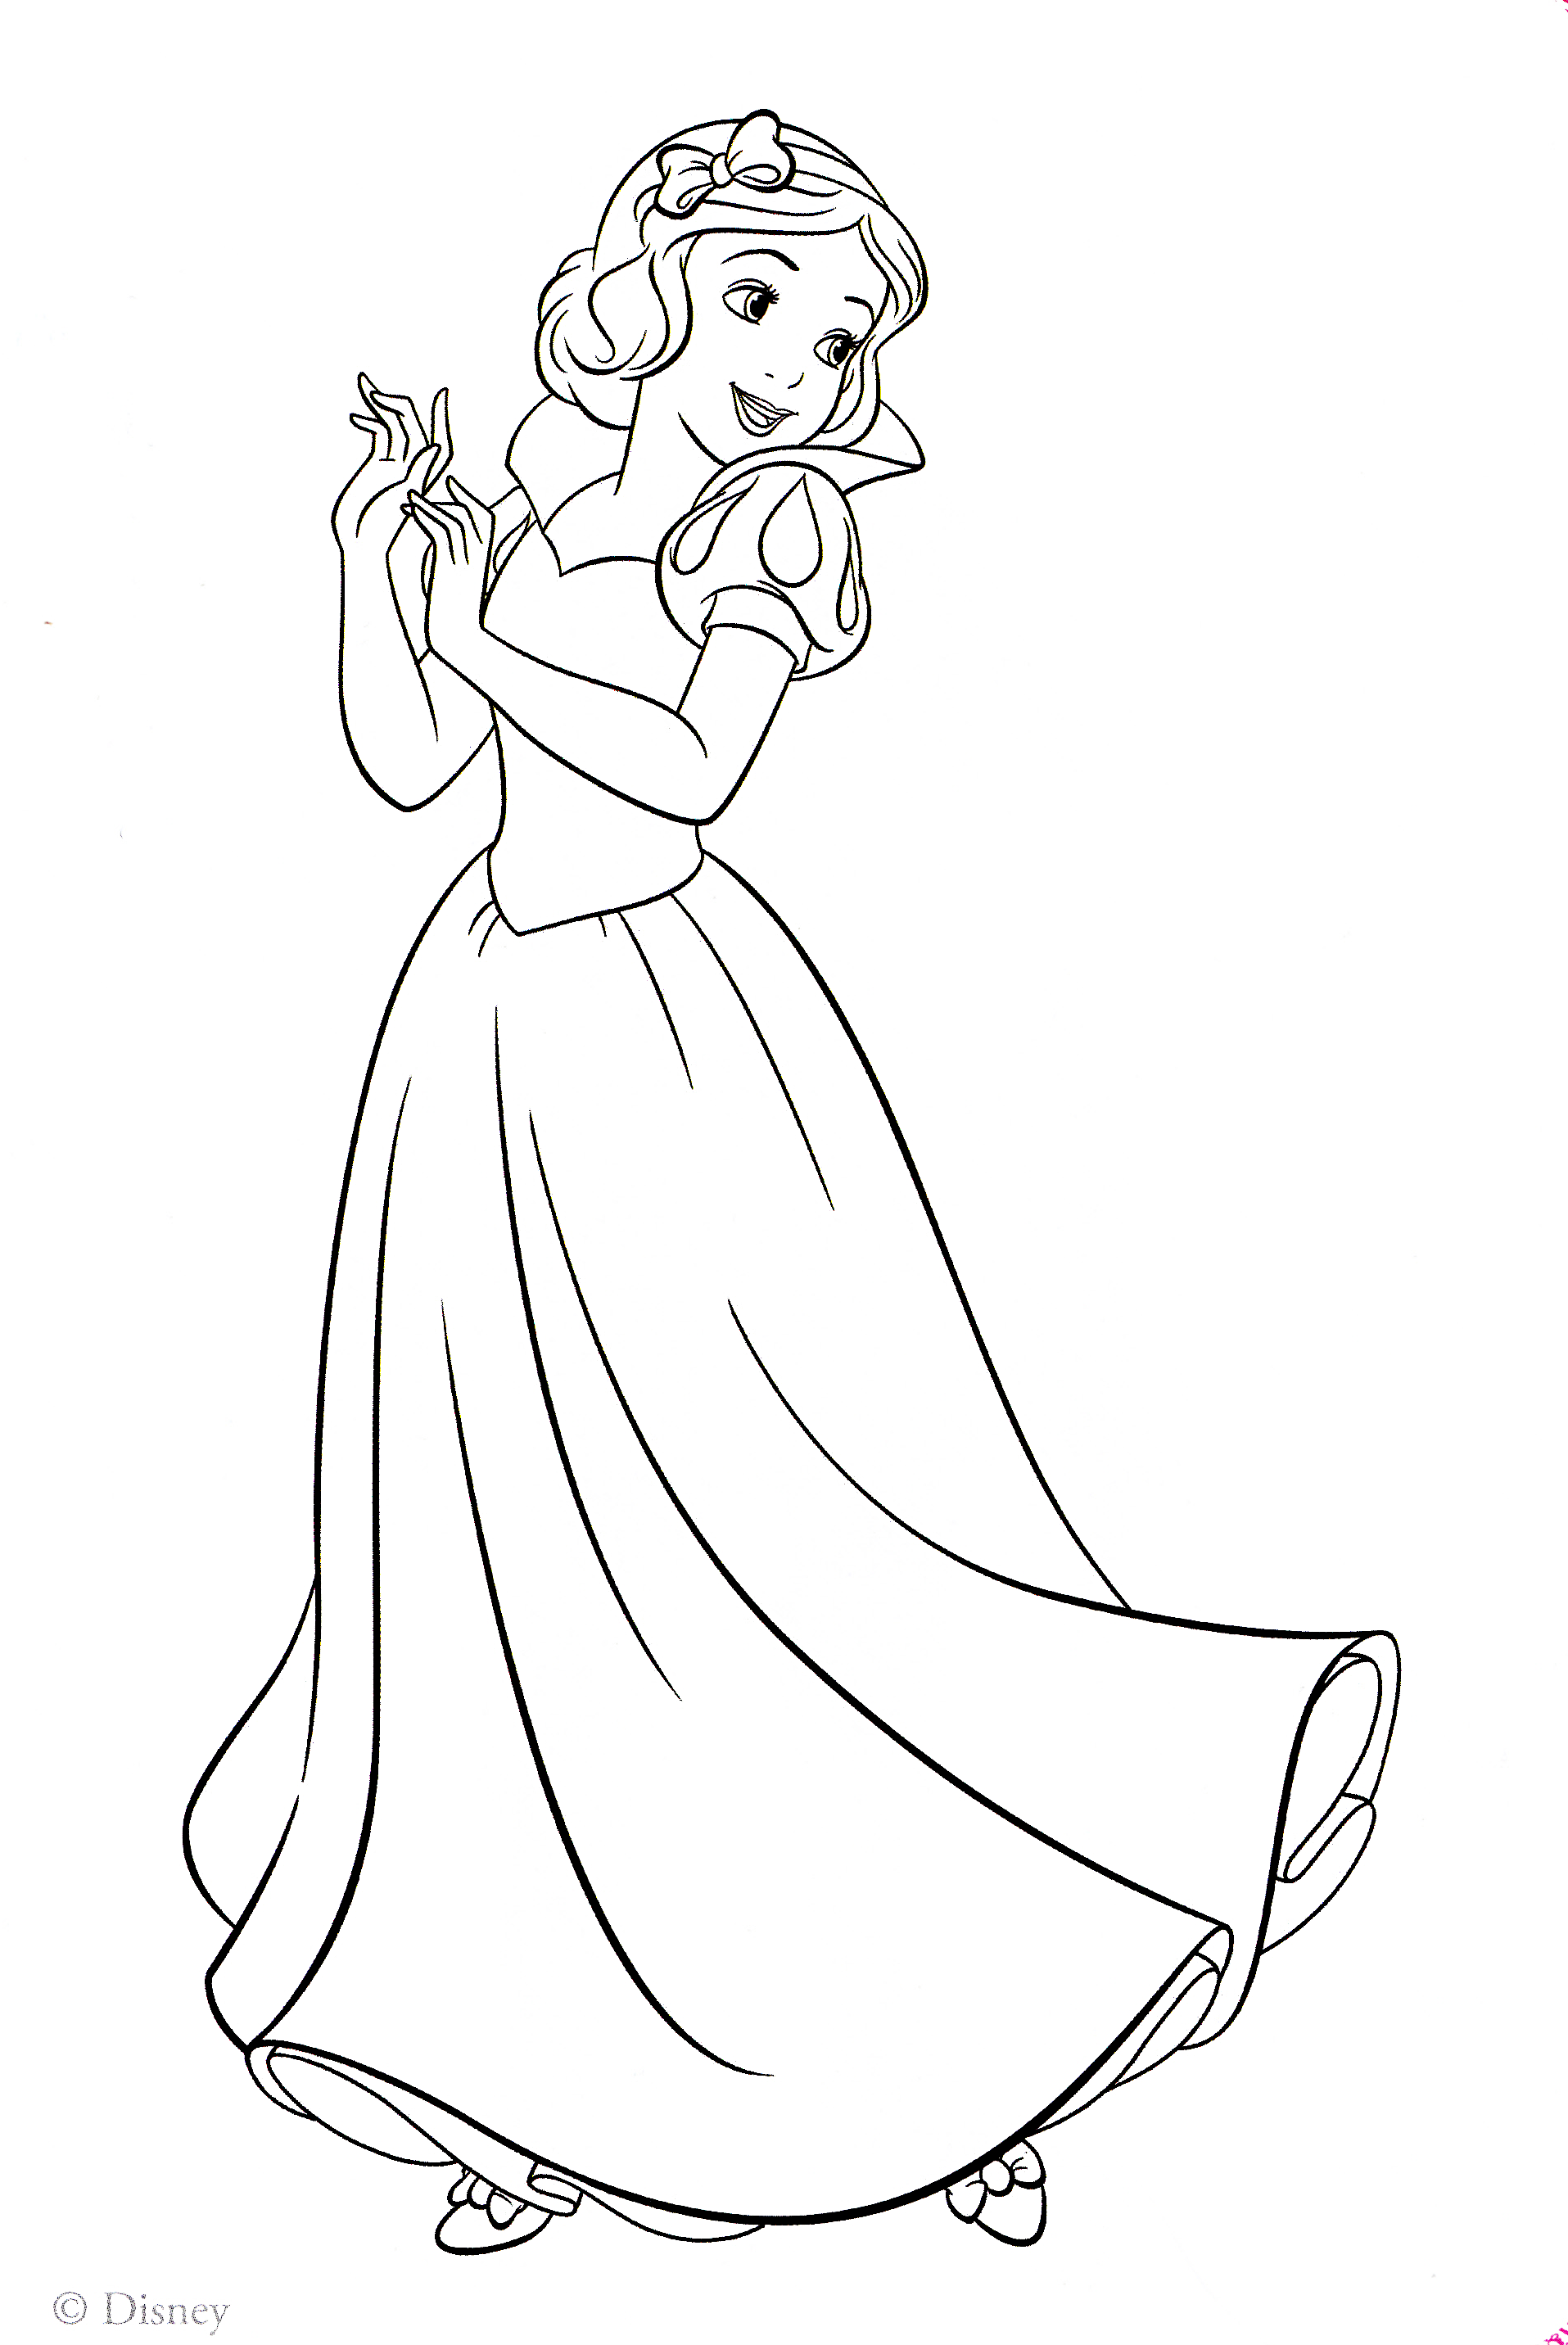 snpw white coloring pages - photo#44